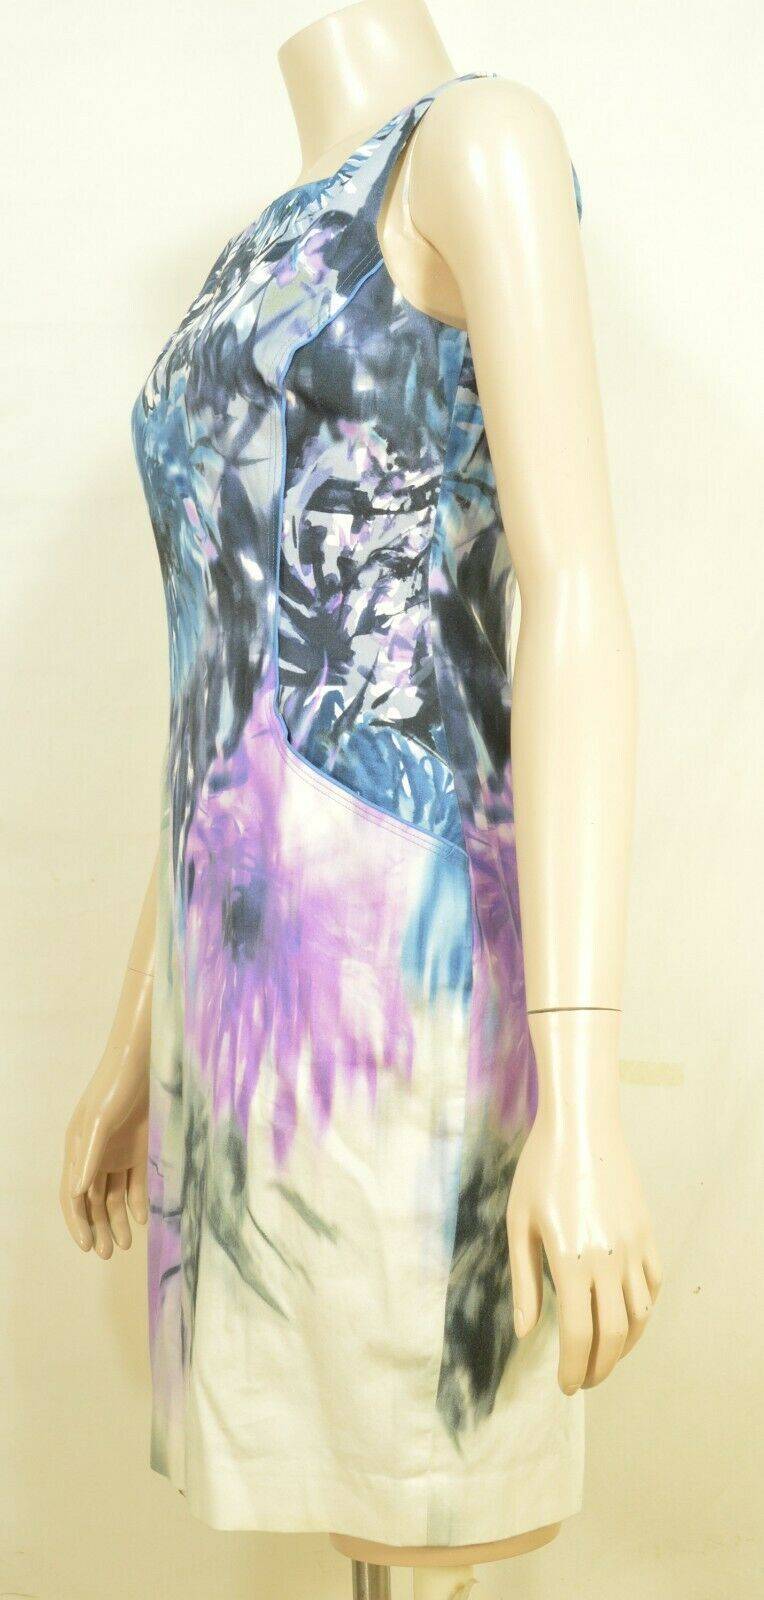 Elie Tahari dress SZ 2 LOT of 2  1 turquoise 1 floral sheath career chic lined image 9